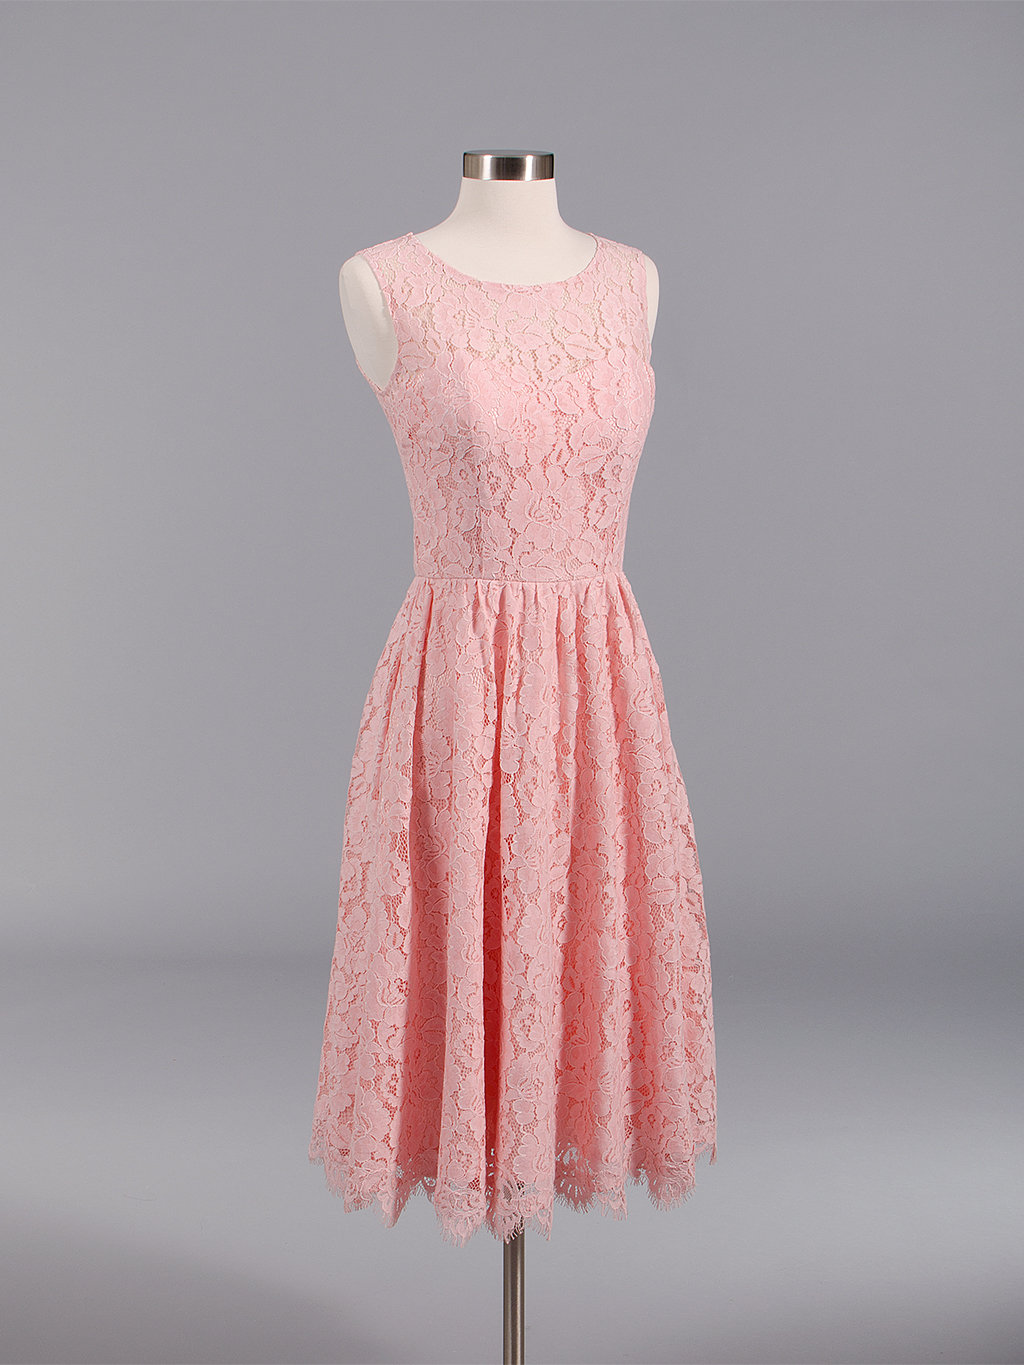 Lace bridesmaid dress pink BM007-Pink